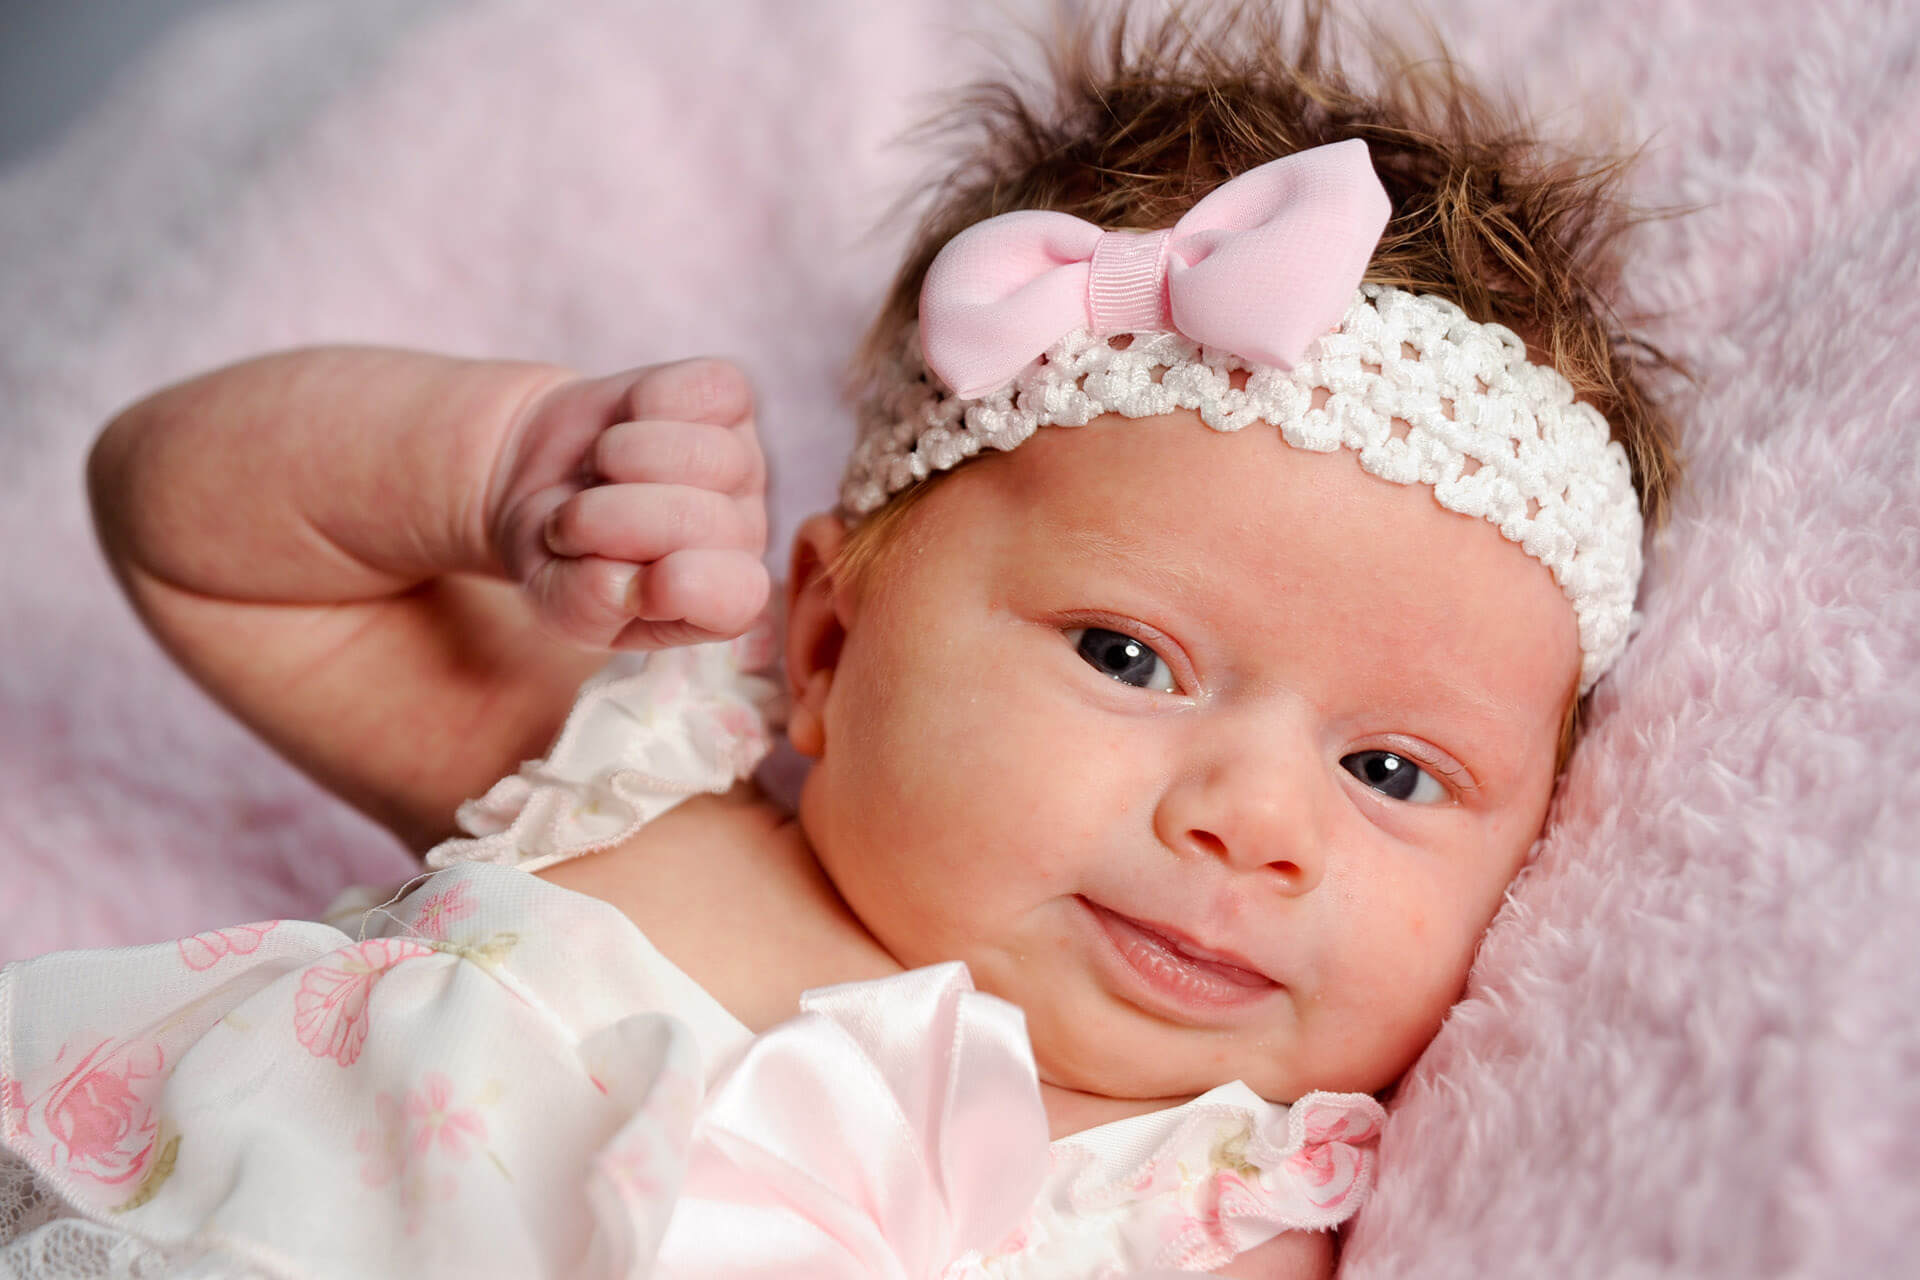 Best Detroit infant photographer takes personality filled newborn lifestyle photos in metro Detroit, Michigan.